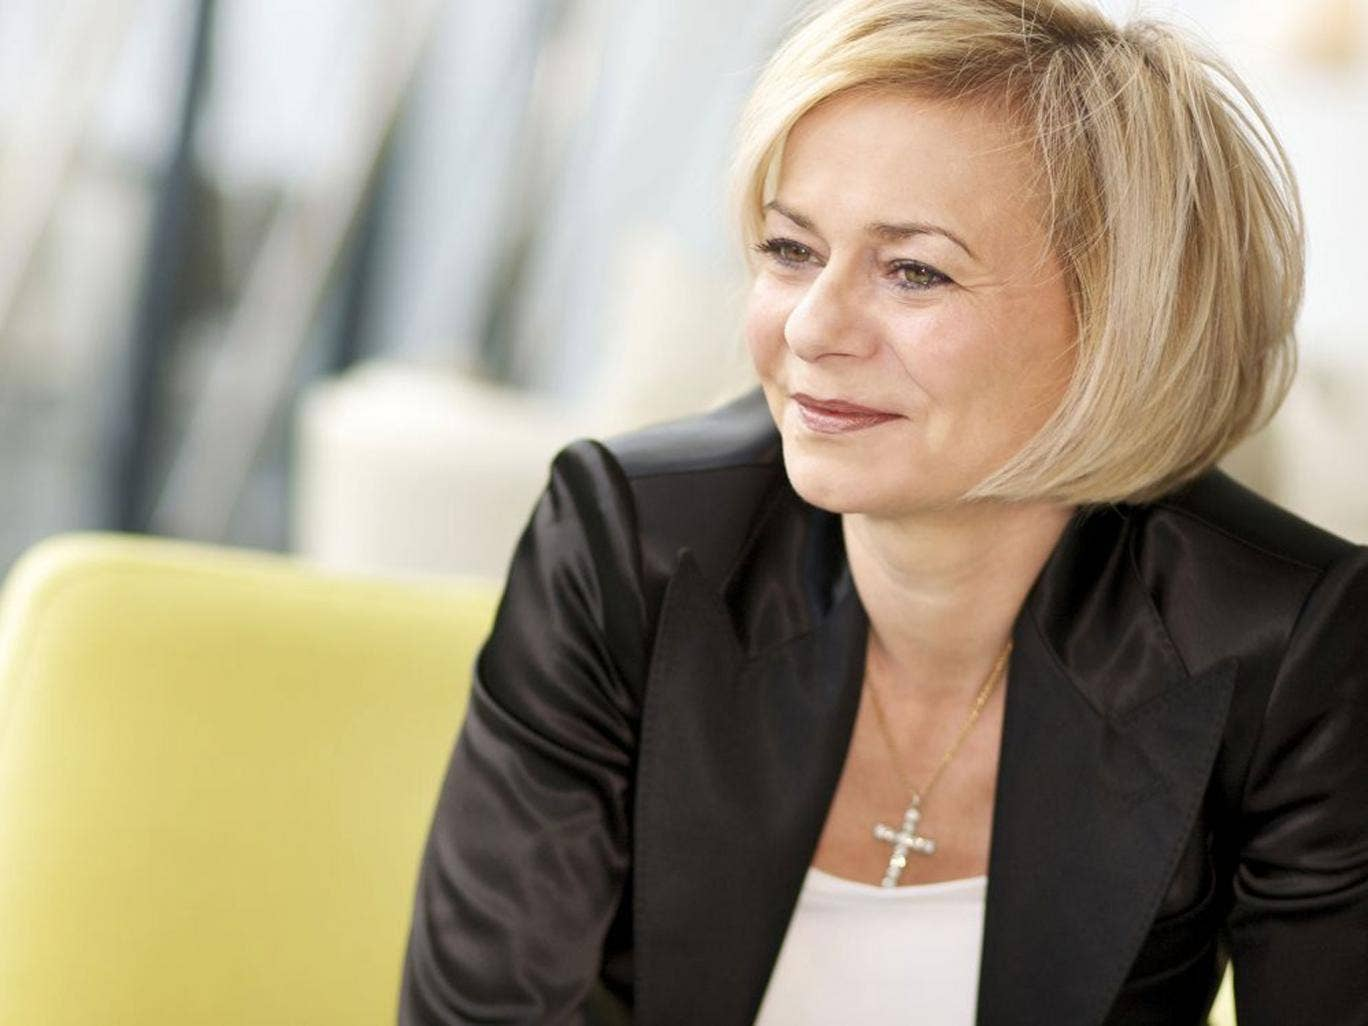 Thomas Cook's chief executive Harriet Green